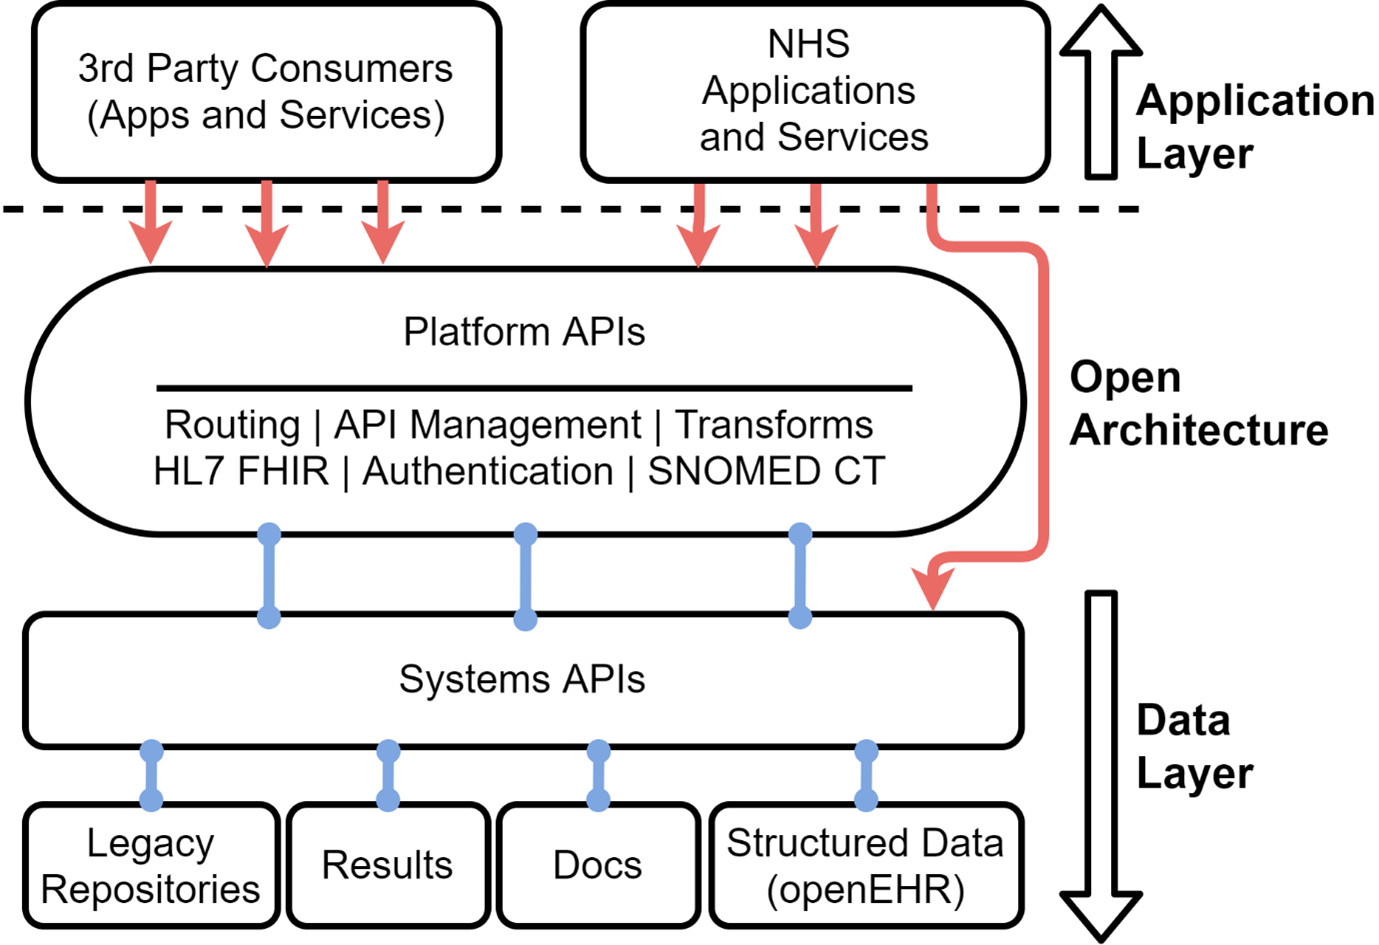 openEHR as part of open platform